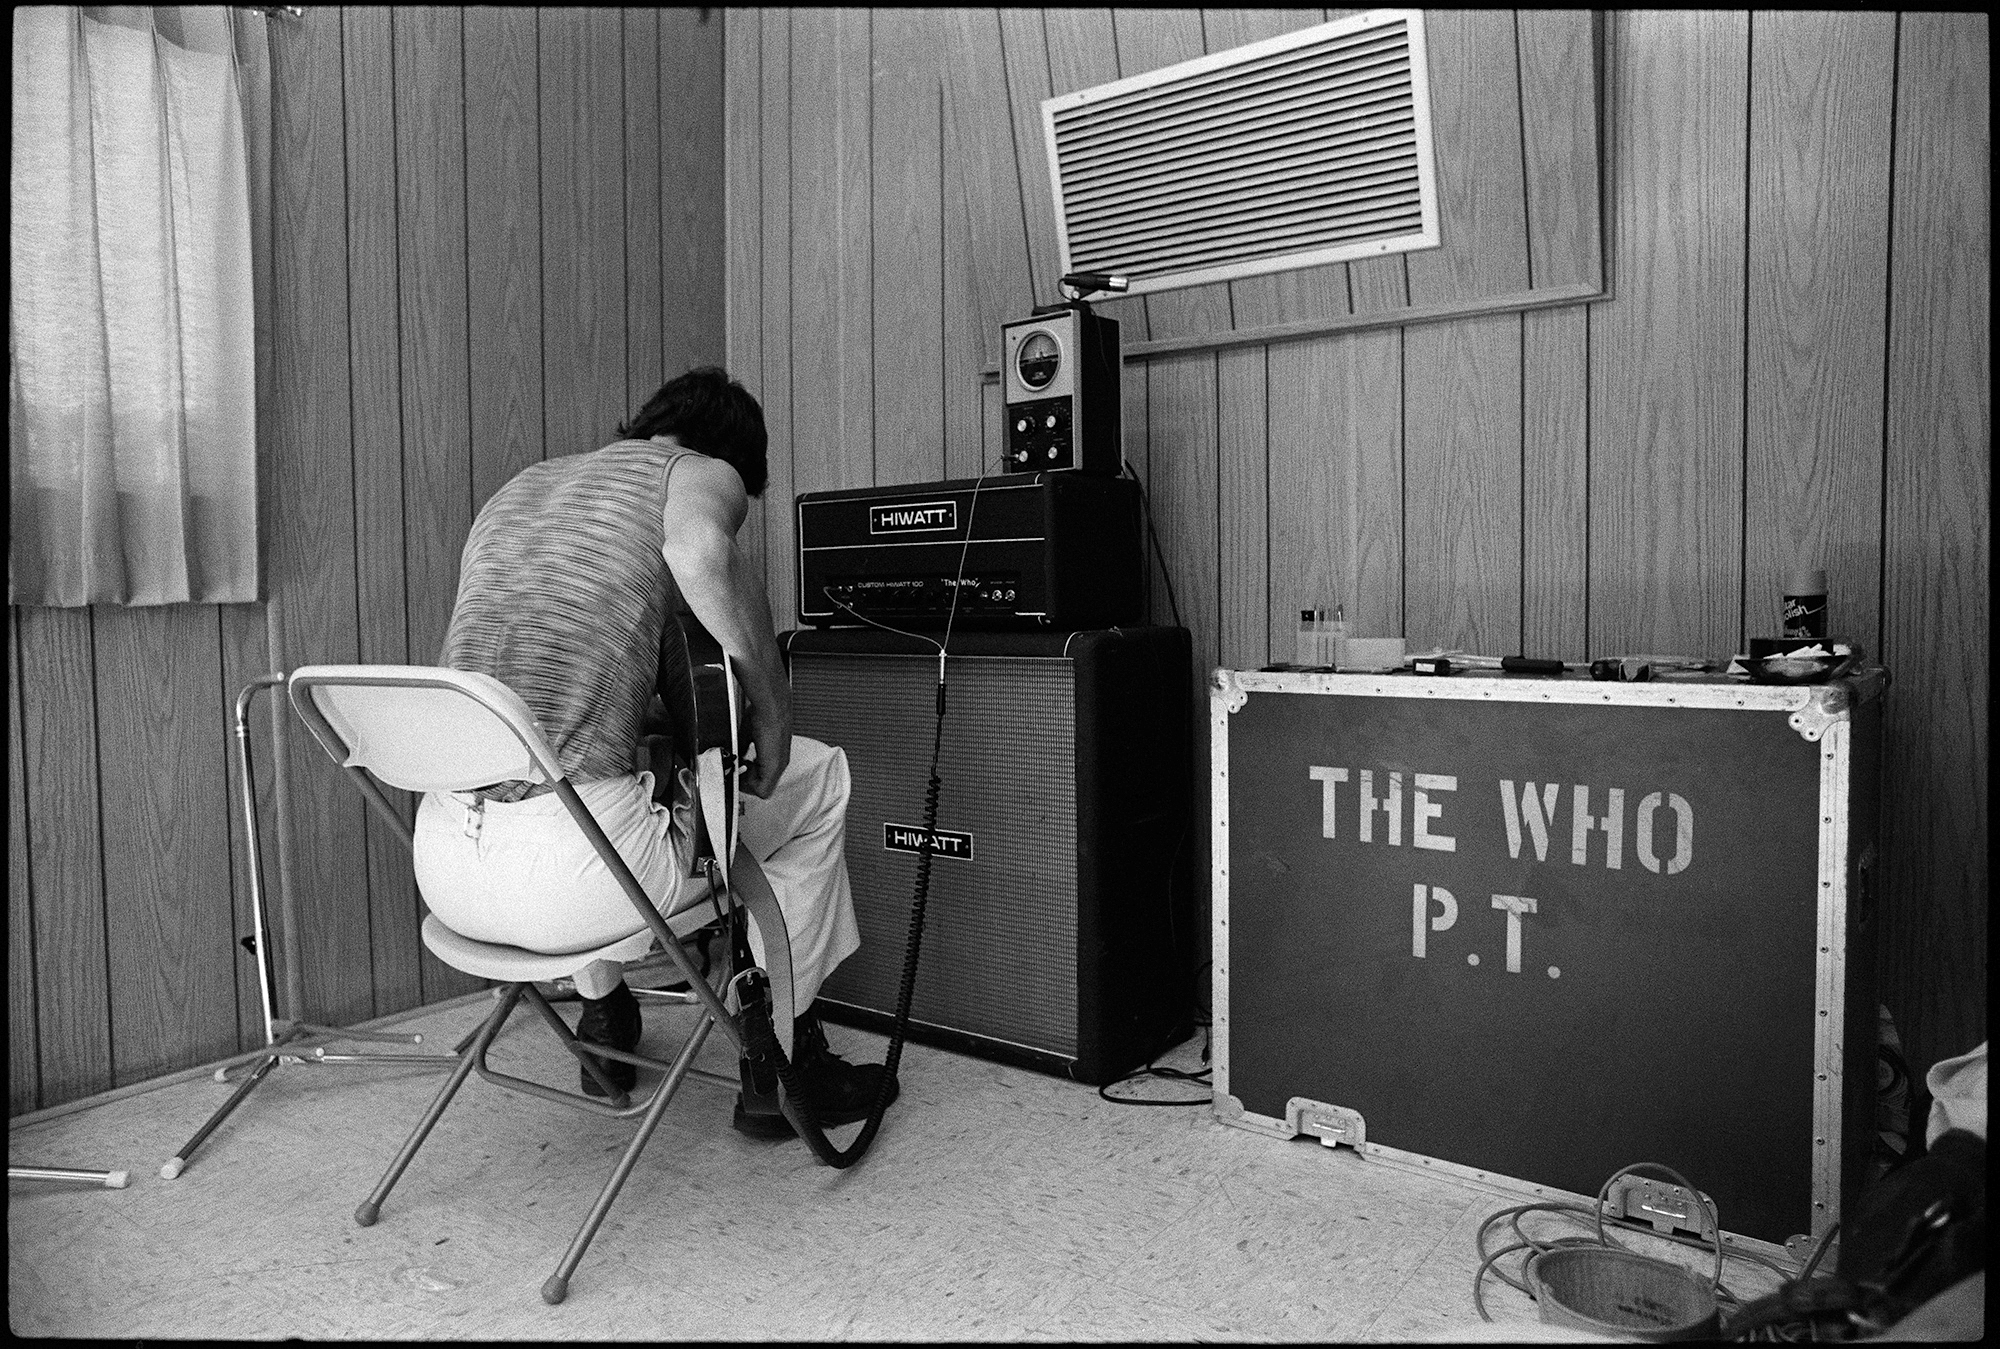 an image of the who guitarist pete townshend with his back to the camera